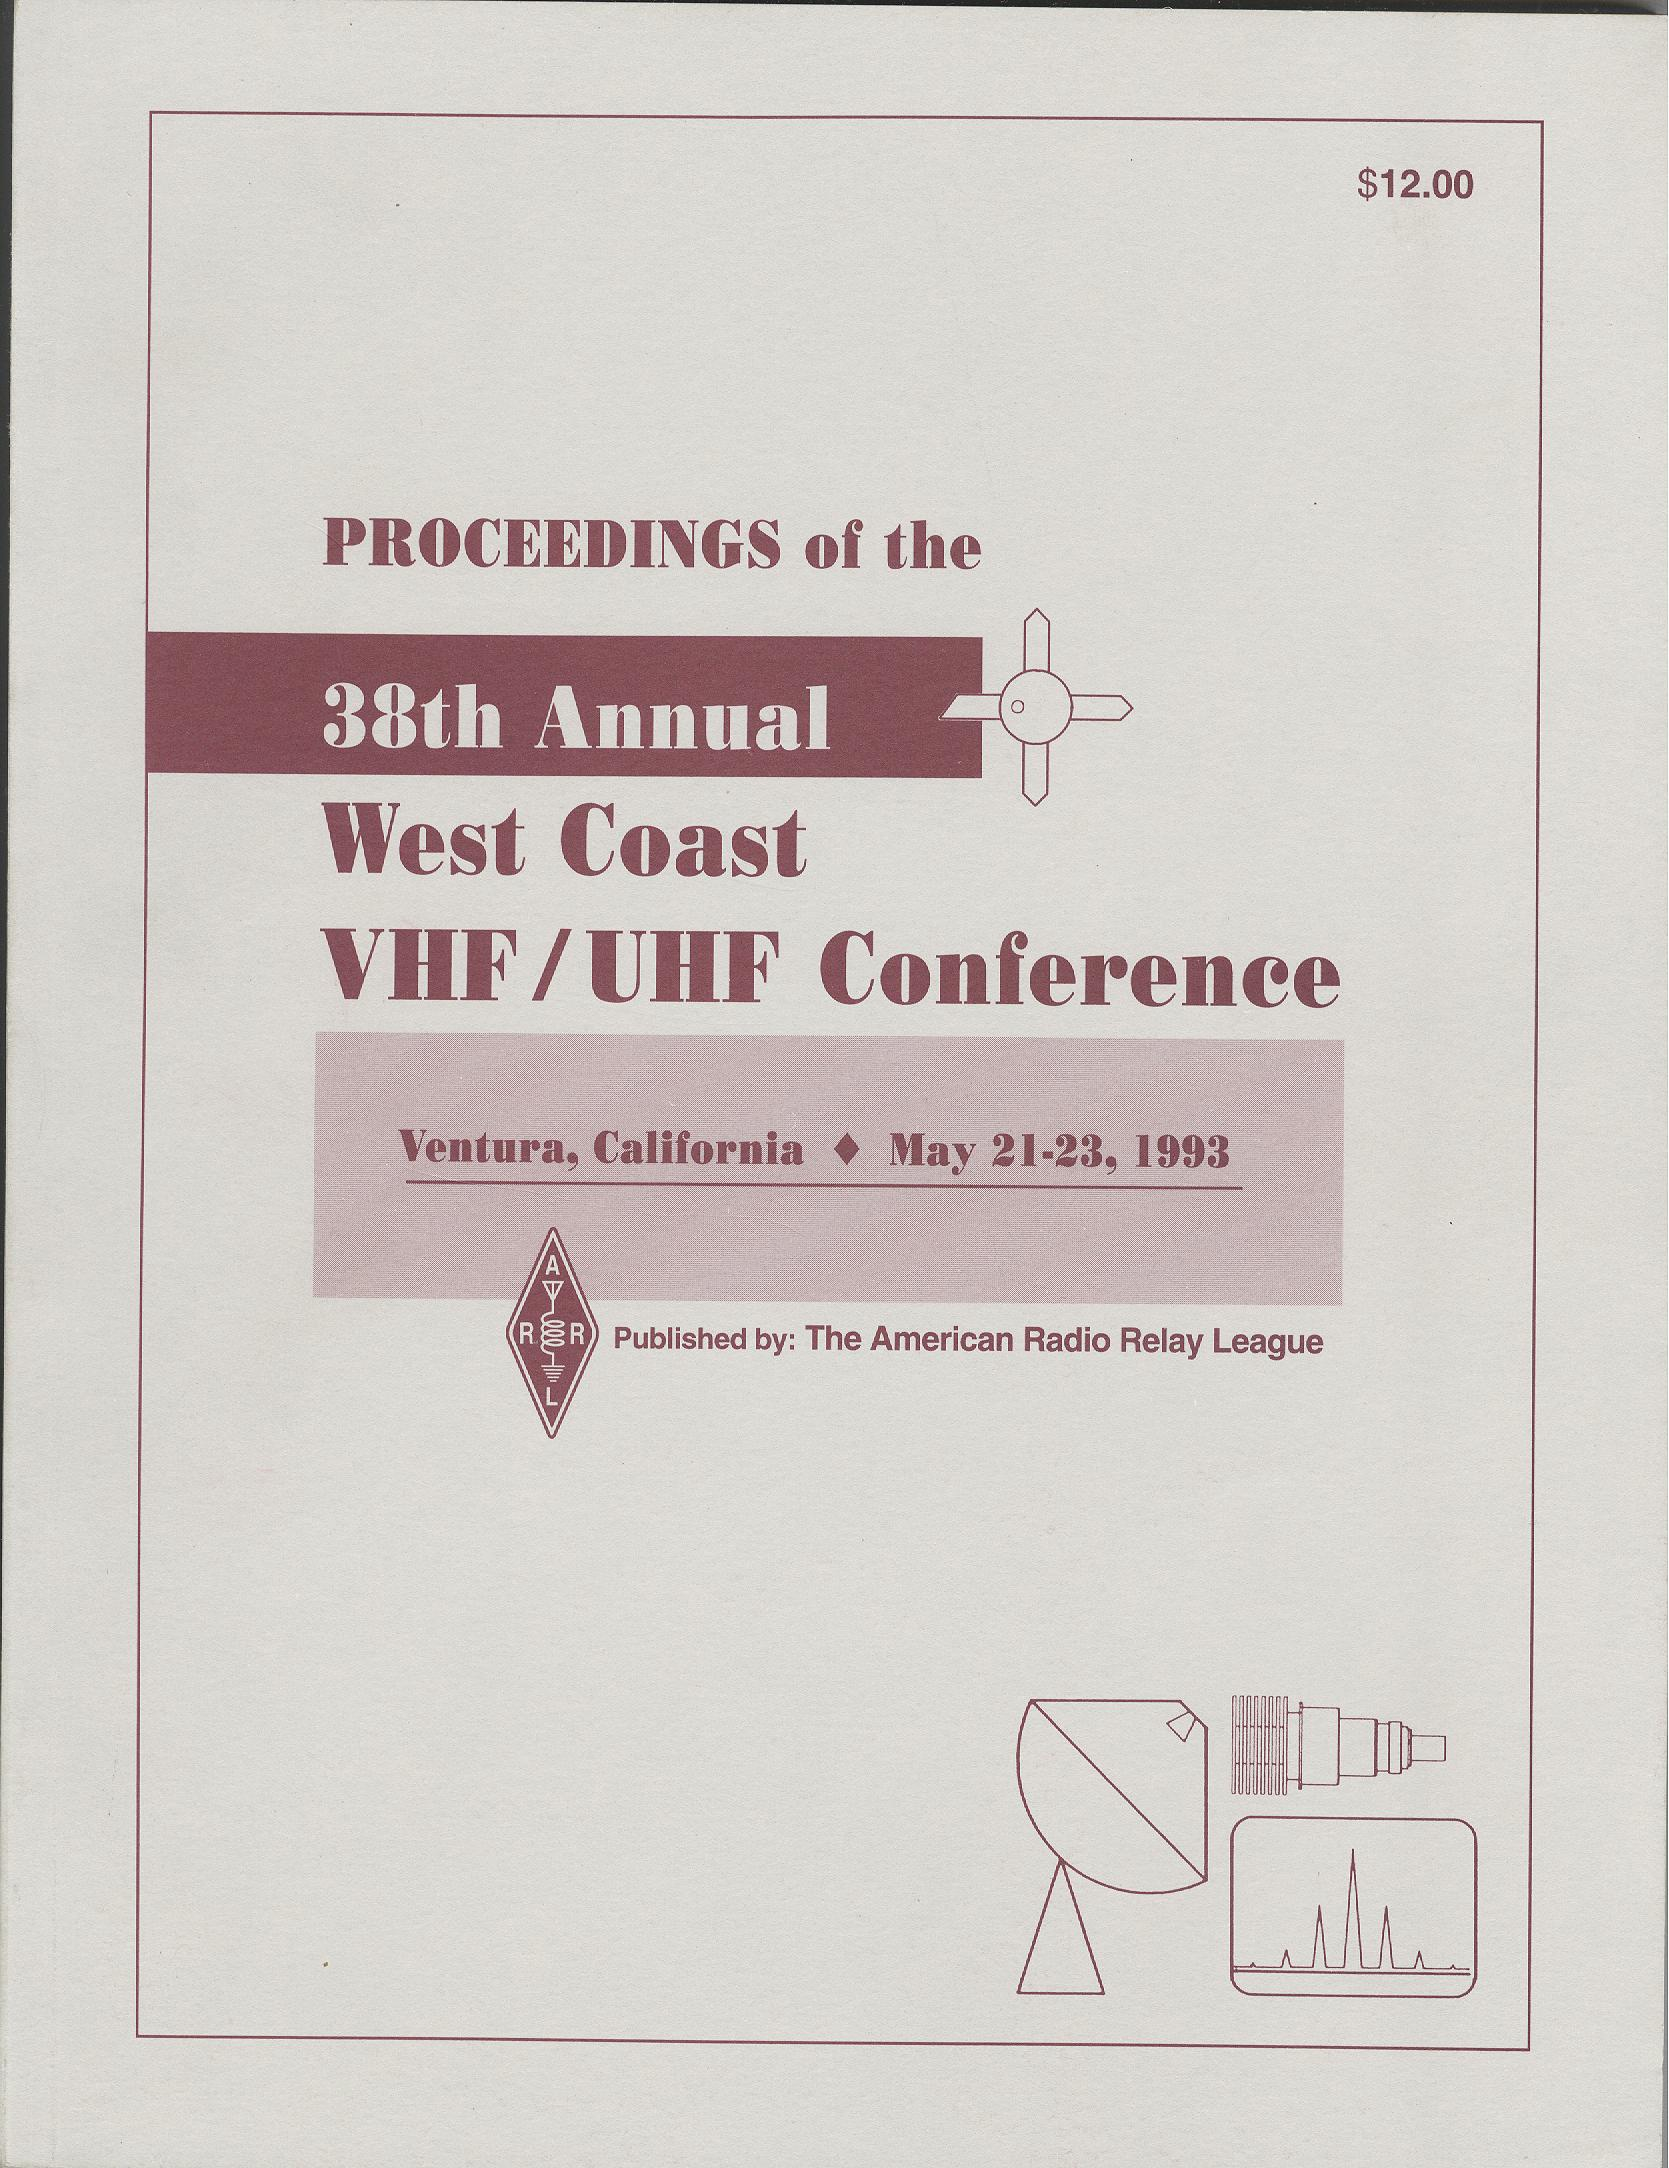 Proceedings of the 38th Annual West Coast VHF/UHF Conference 1993